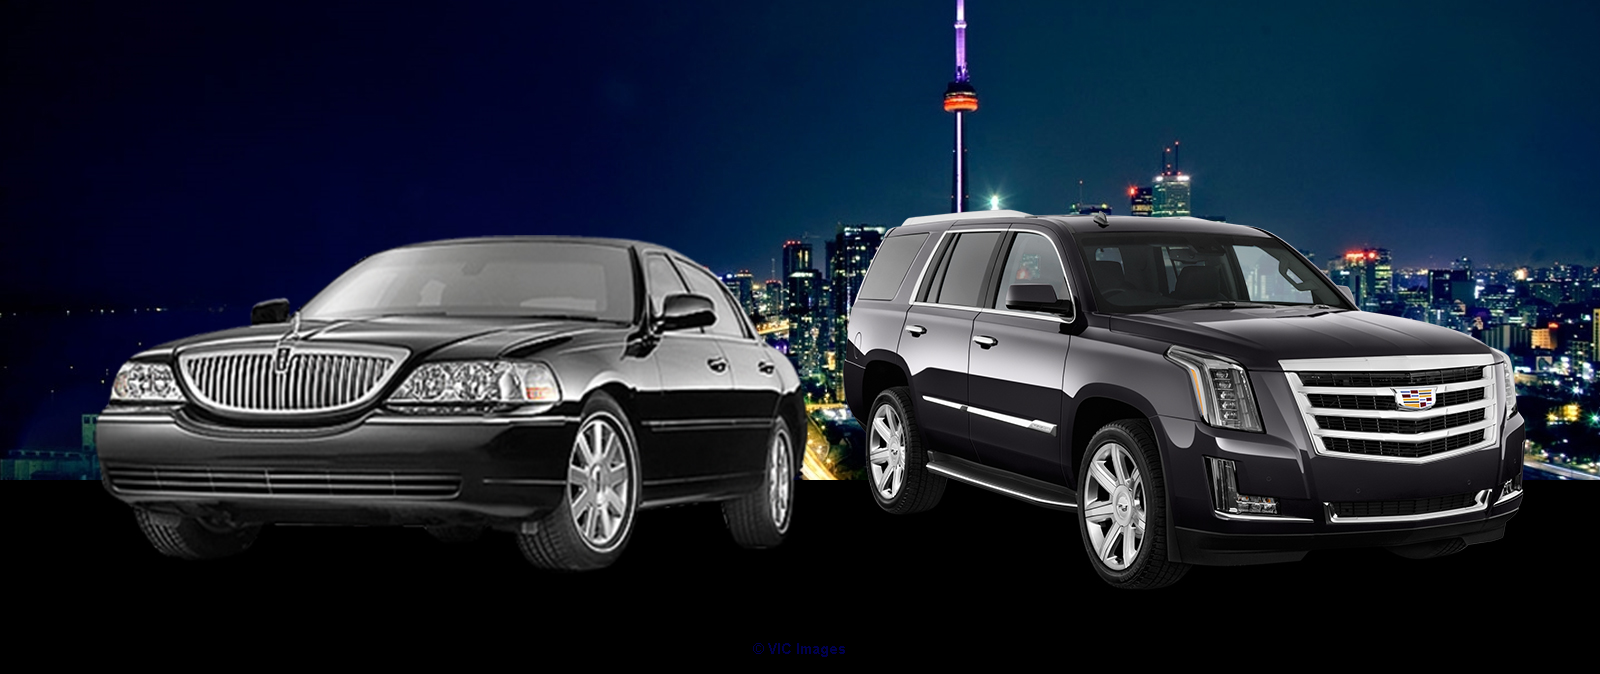 Airport Taxi Services in Cambridge, Kitchener & Waterloo Toronto - GTA, Ontario Classifieds